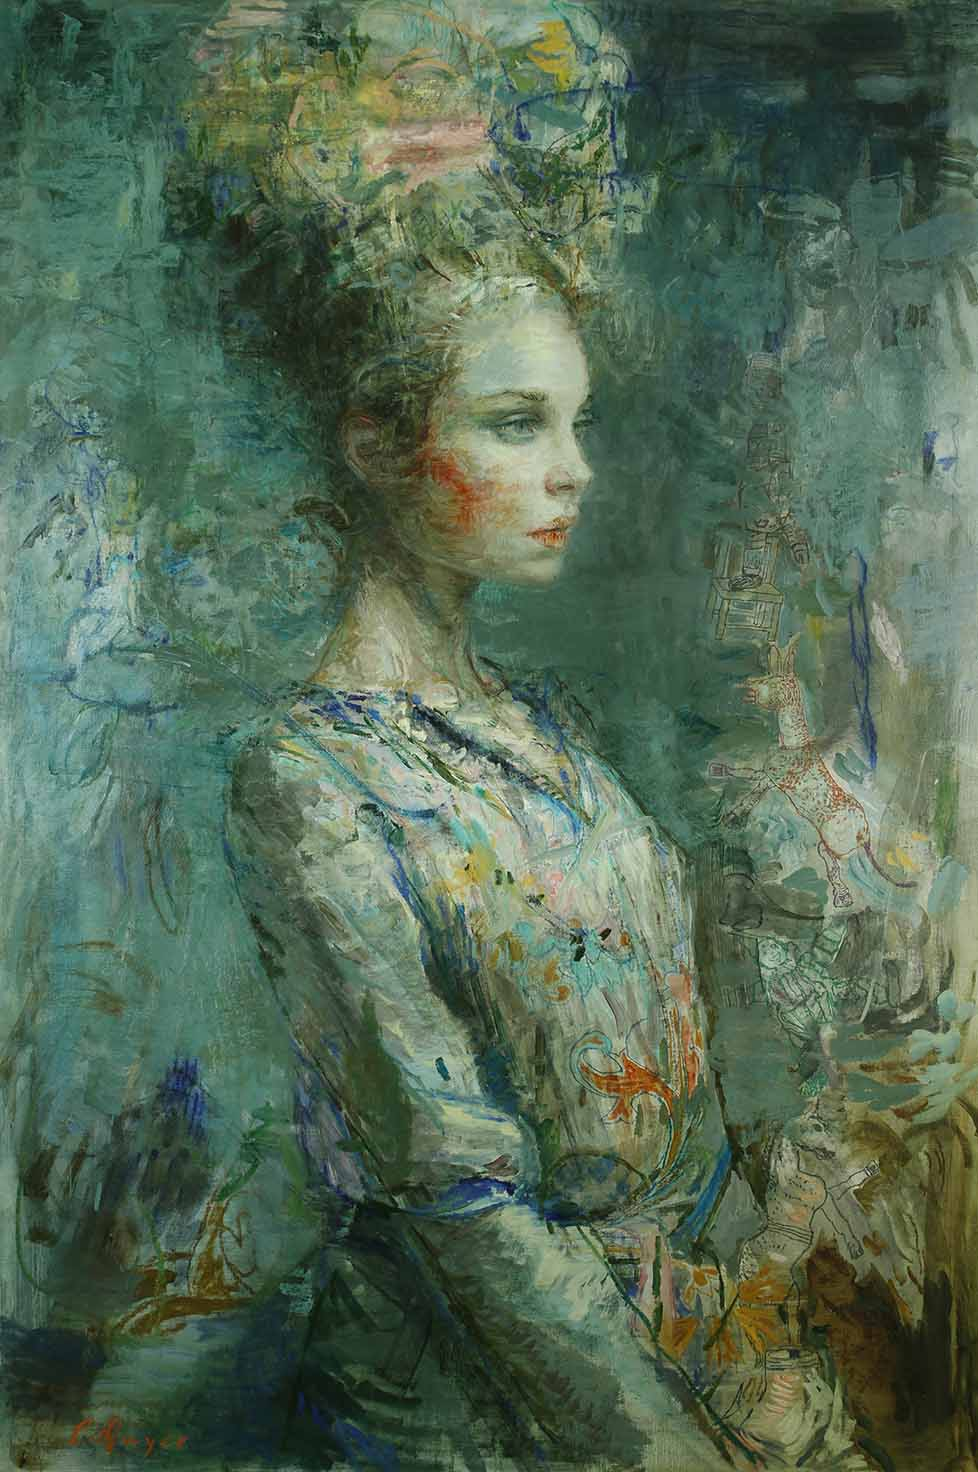 The Art of Charles Dwyer